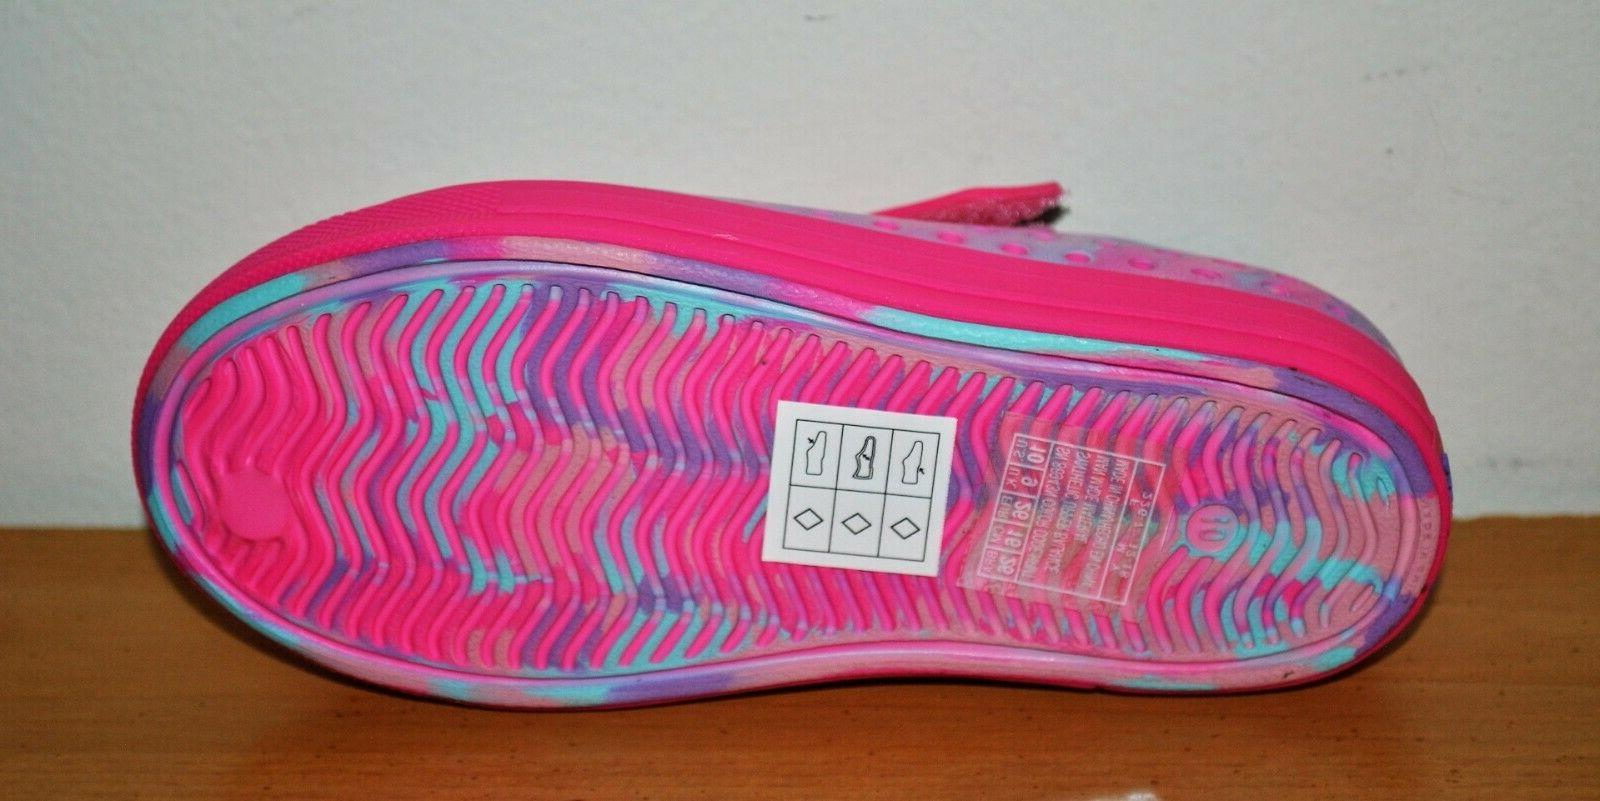 Skechers Swirly Brights Shoes Sandals - Size 9, 10